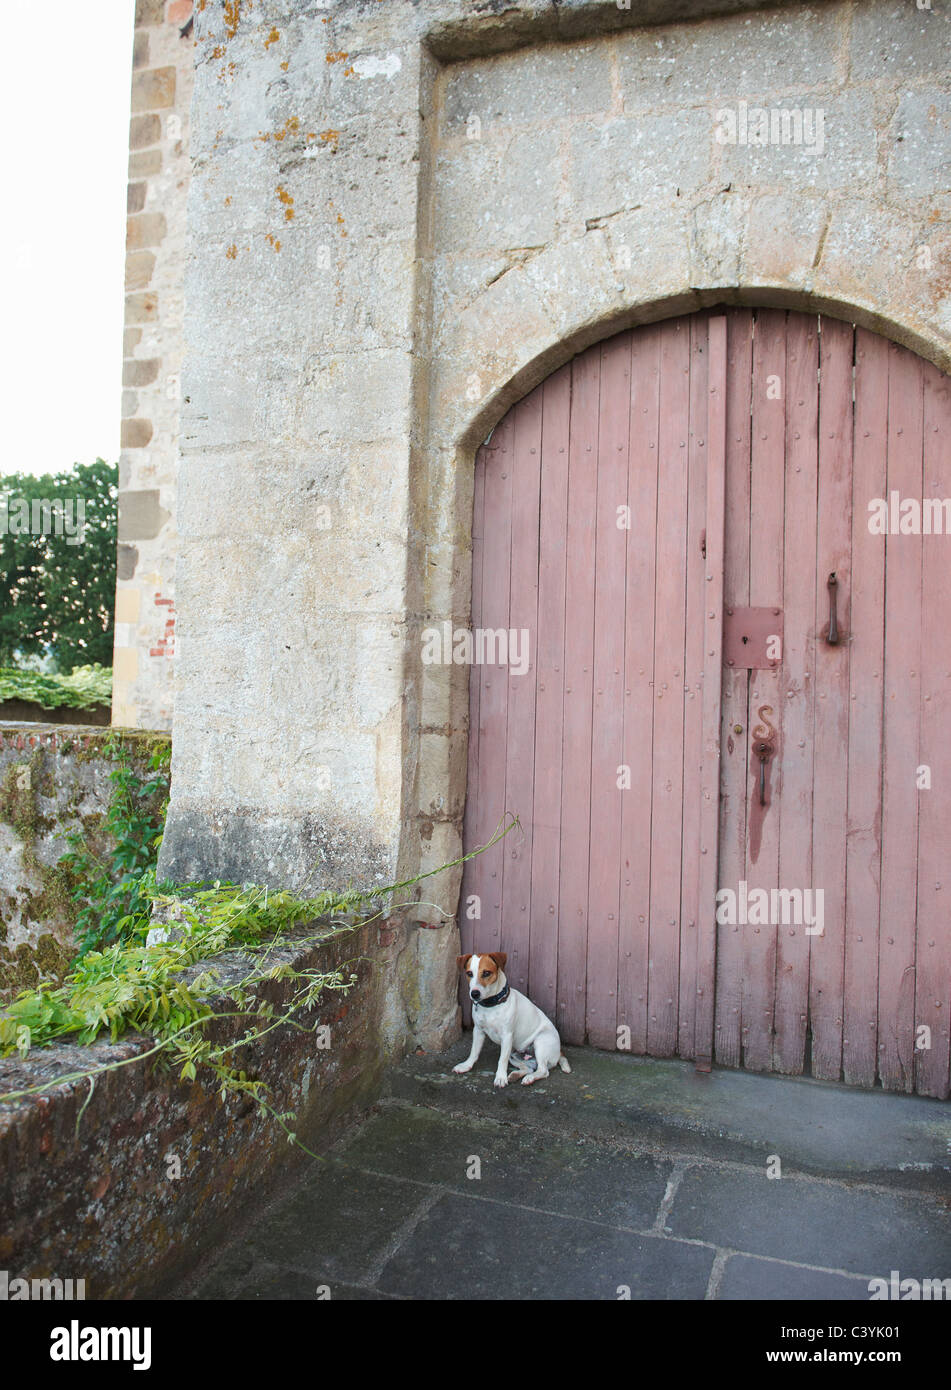 Dog sitting in front of closed doors - Stock Image